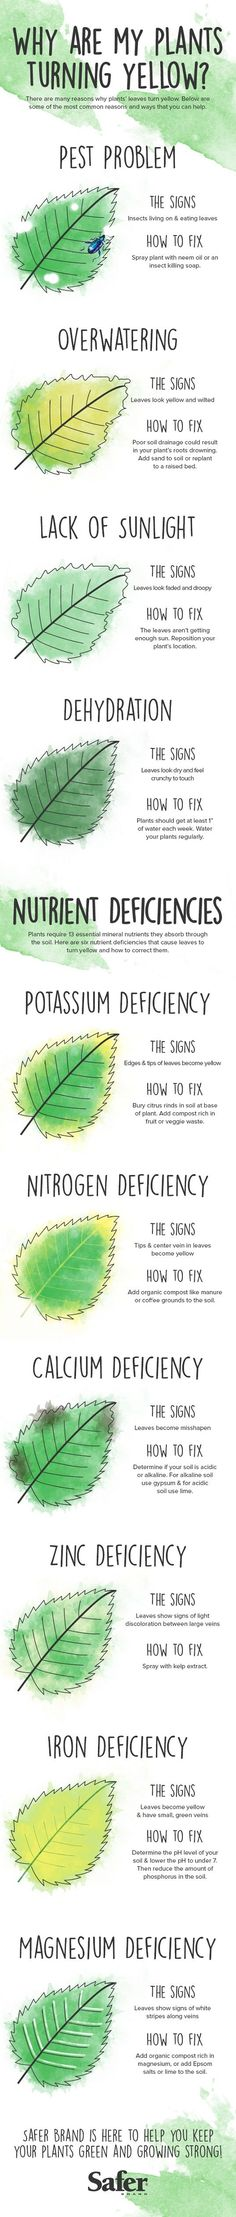 Great infographic about reasons why plants' leaves turn yellow.